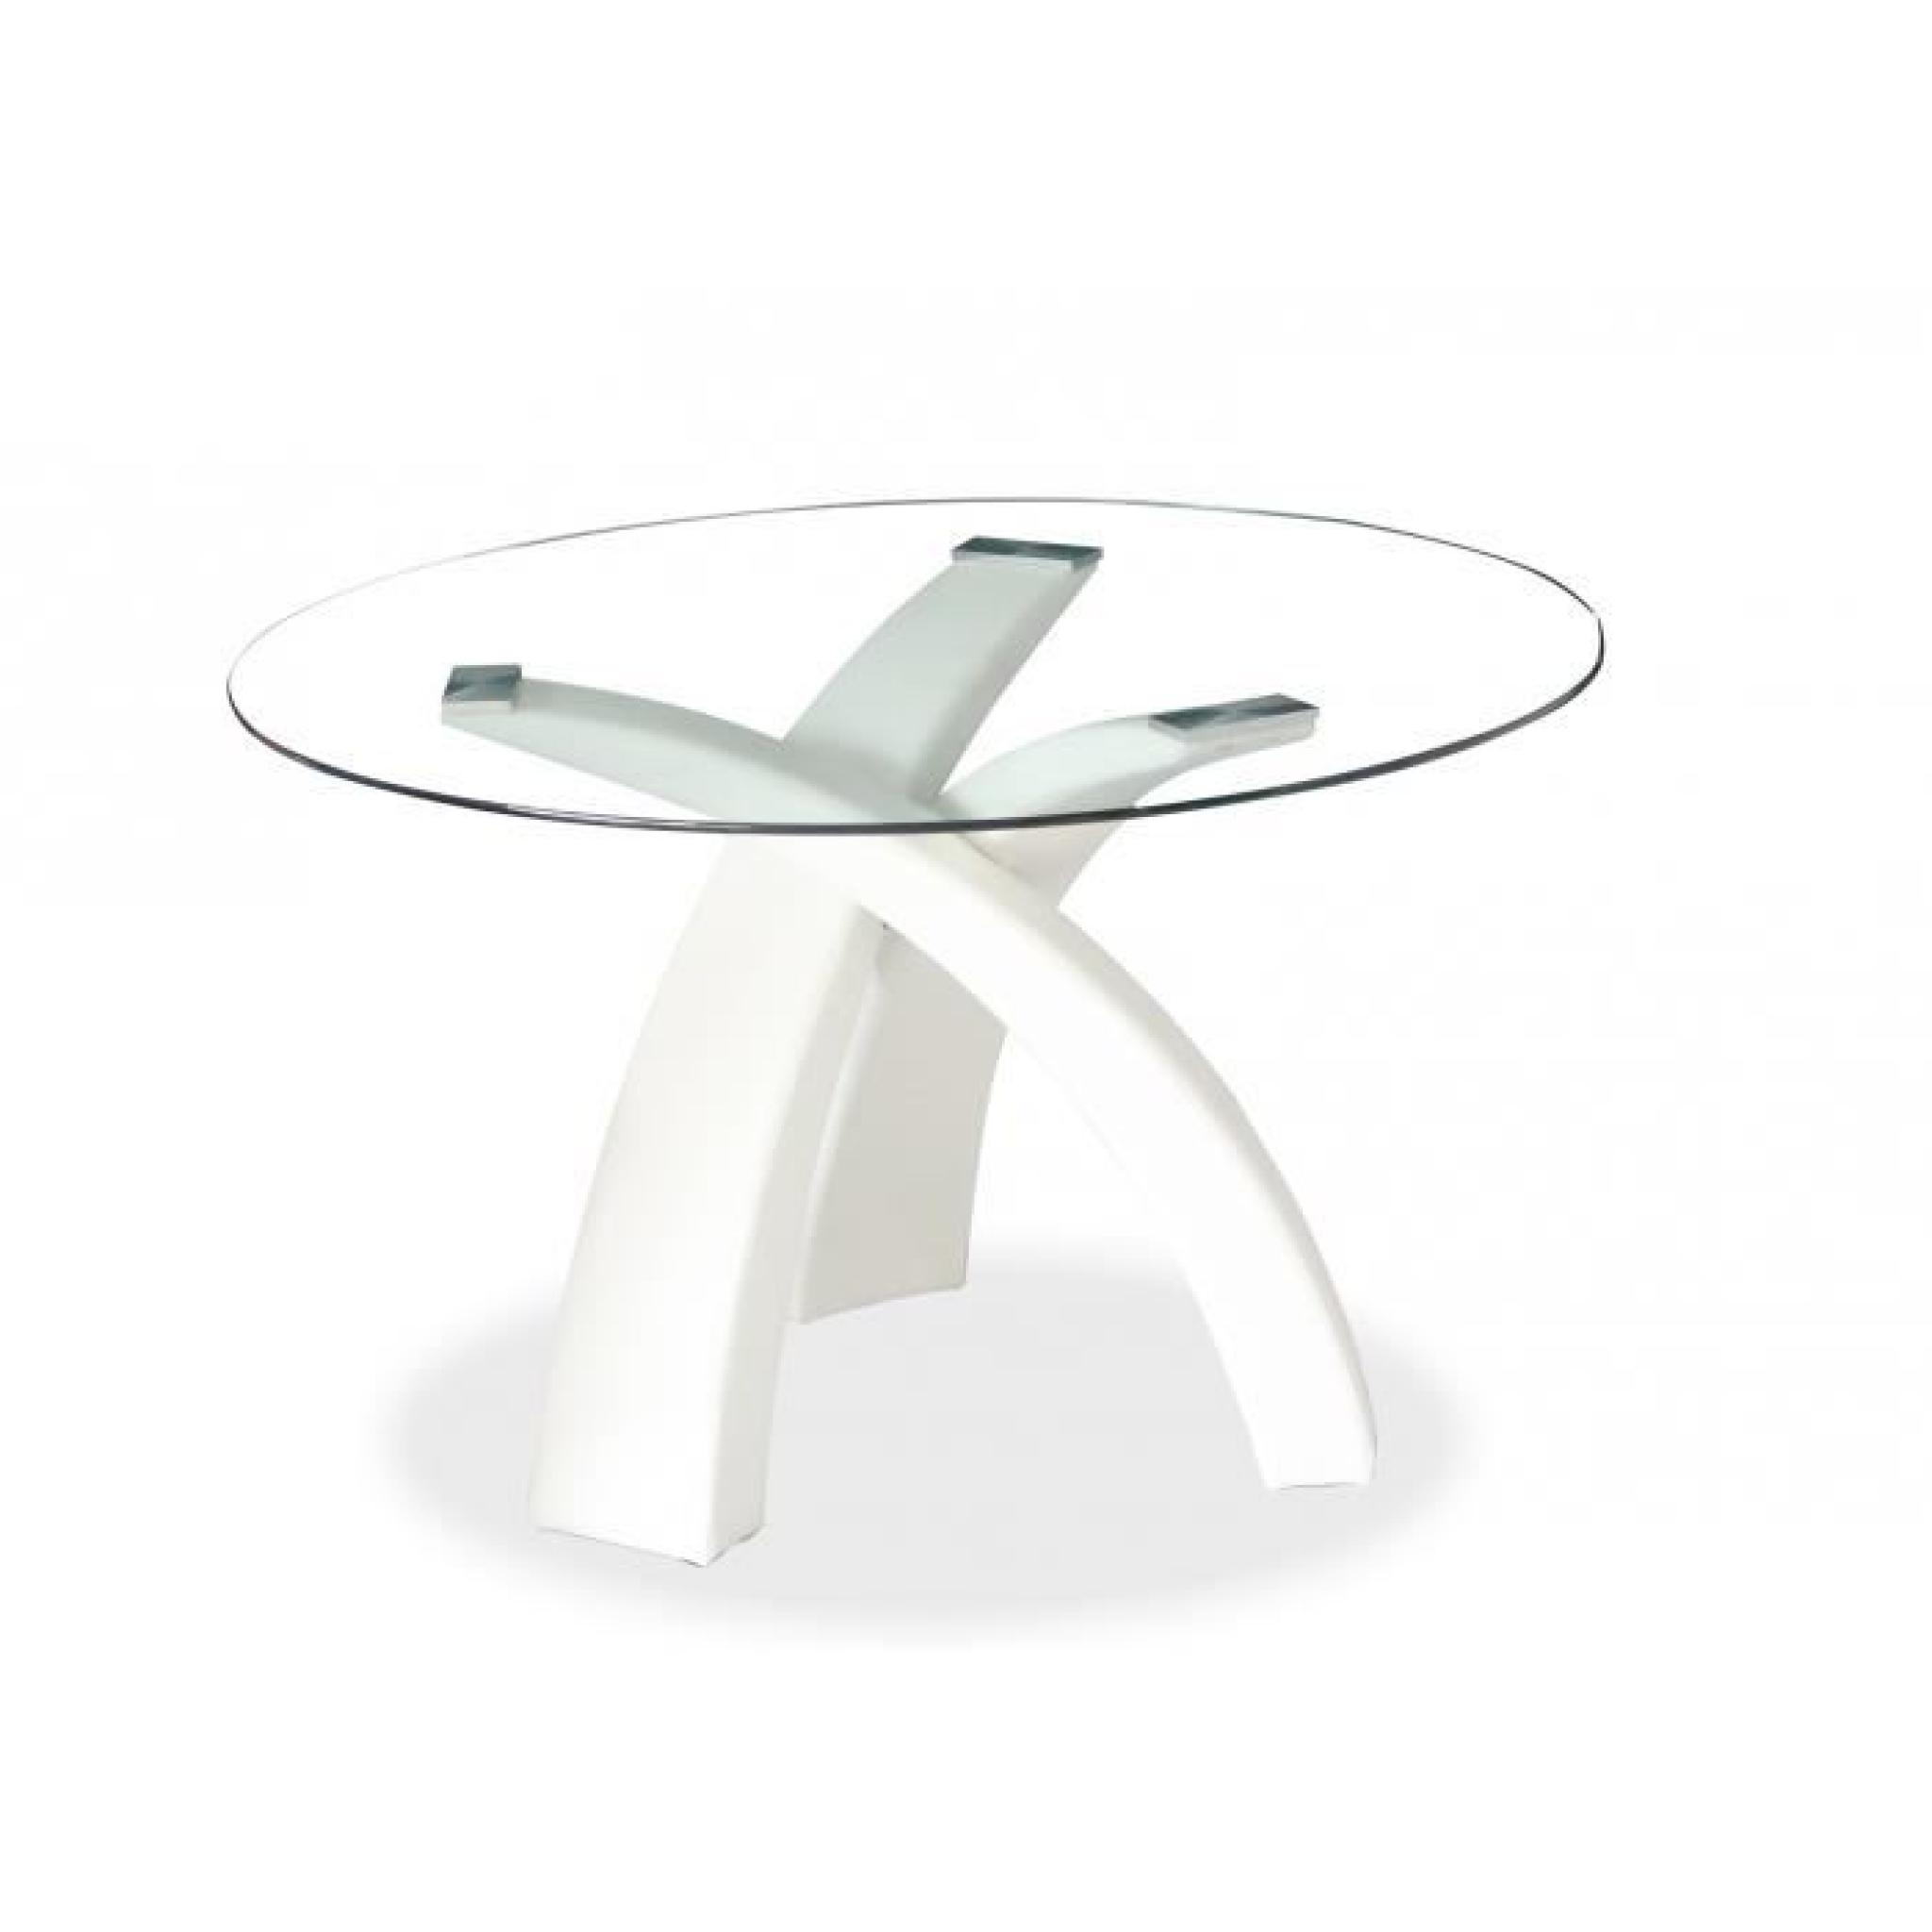 Table manger ronde blanche gore achat vente table for Table de salle a manger design ronde